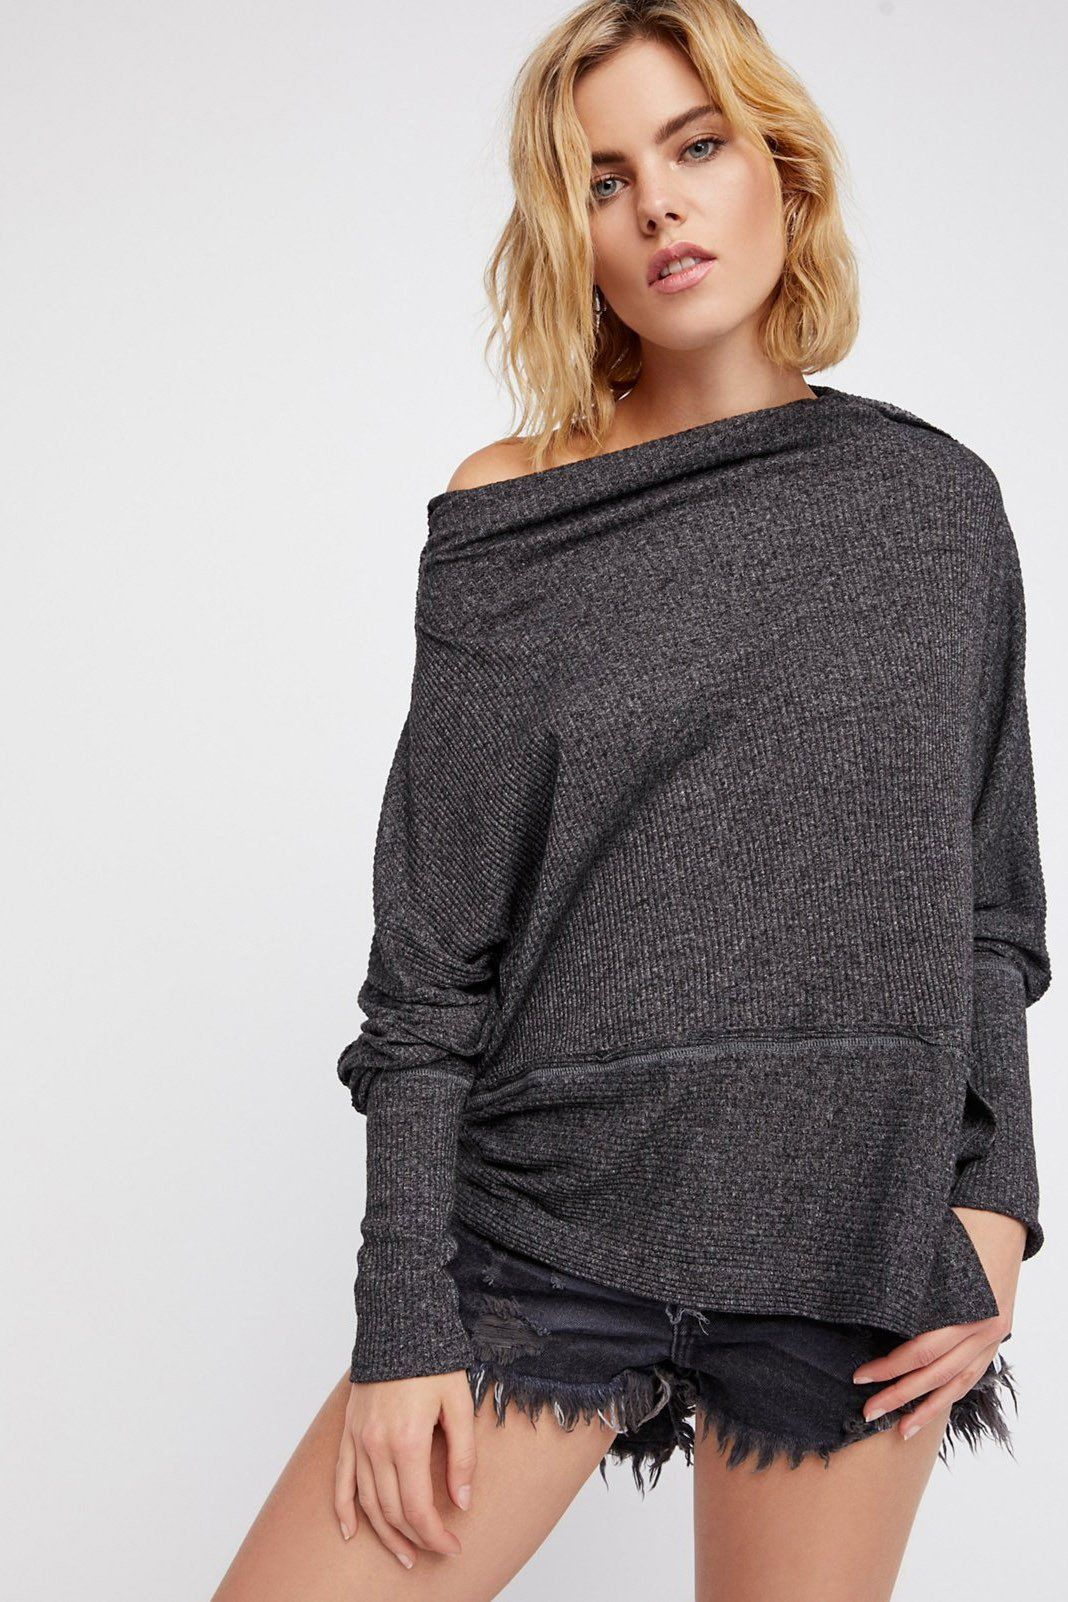 e5bd86284af Free People - We the Free Londontown Thermal in Black (OB658525 ...